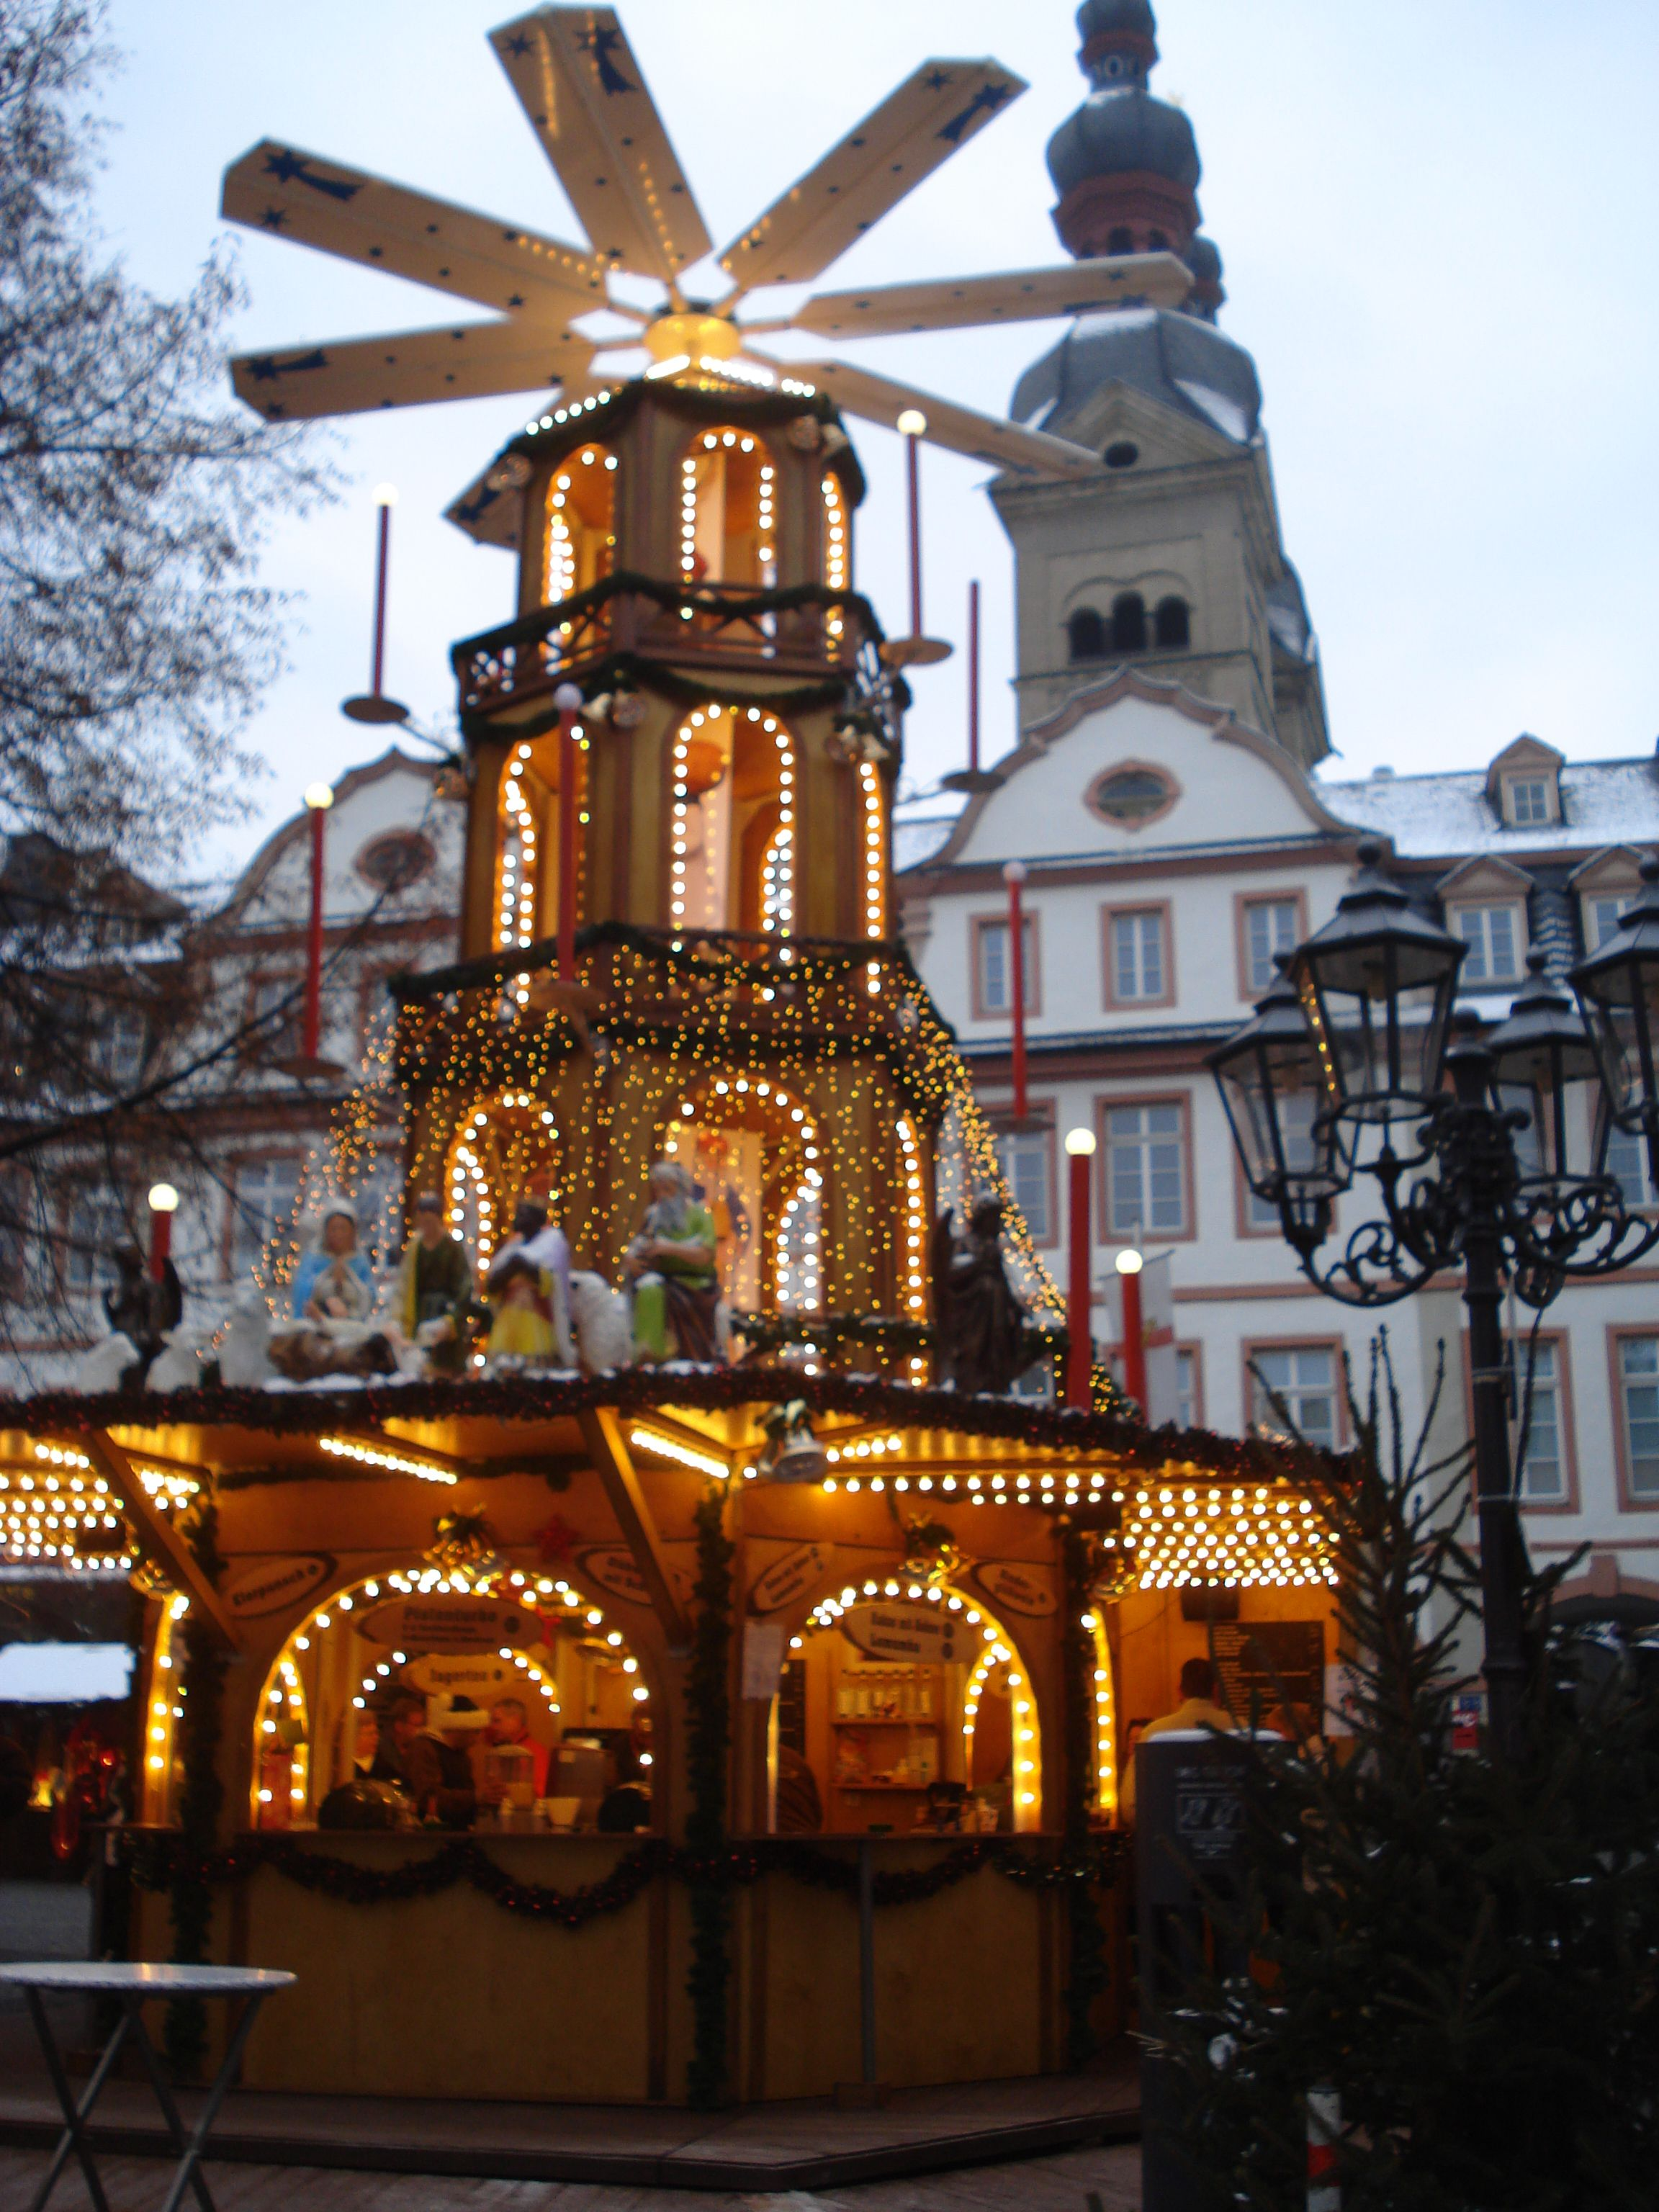 Christmas Markets this booth structure is absolutely